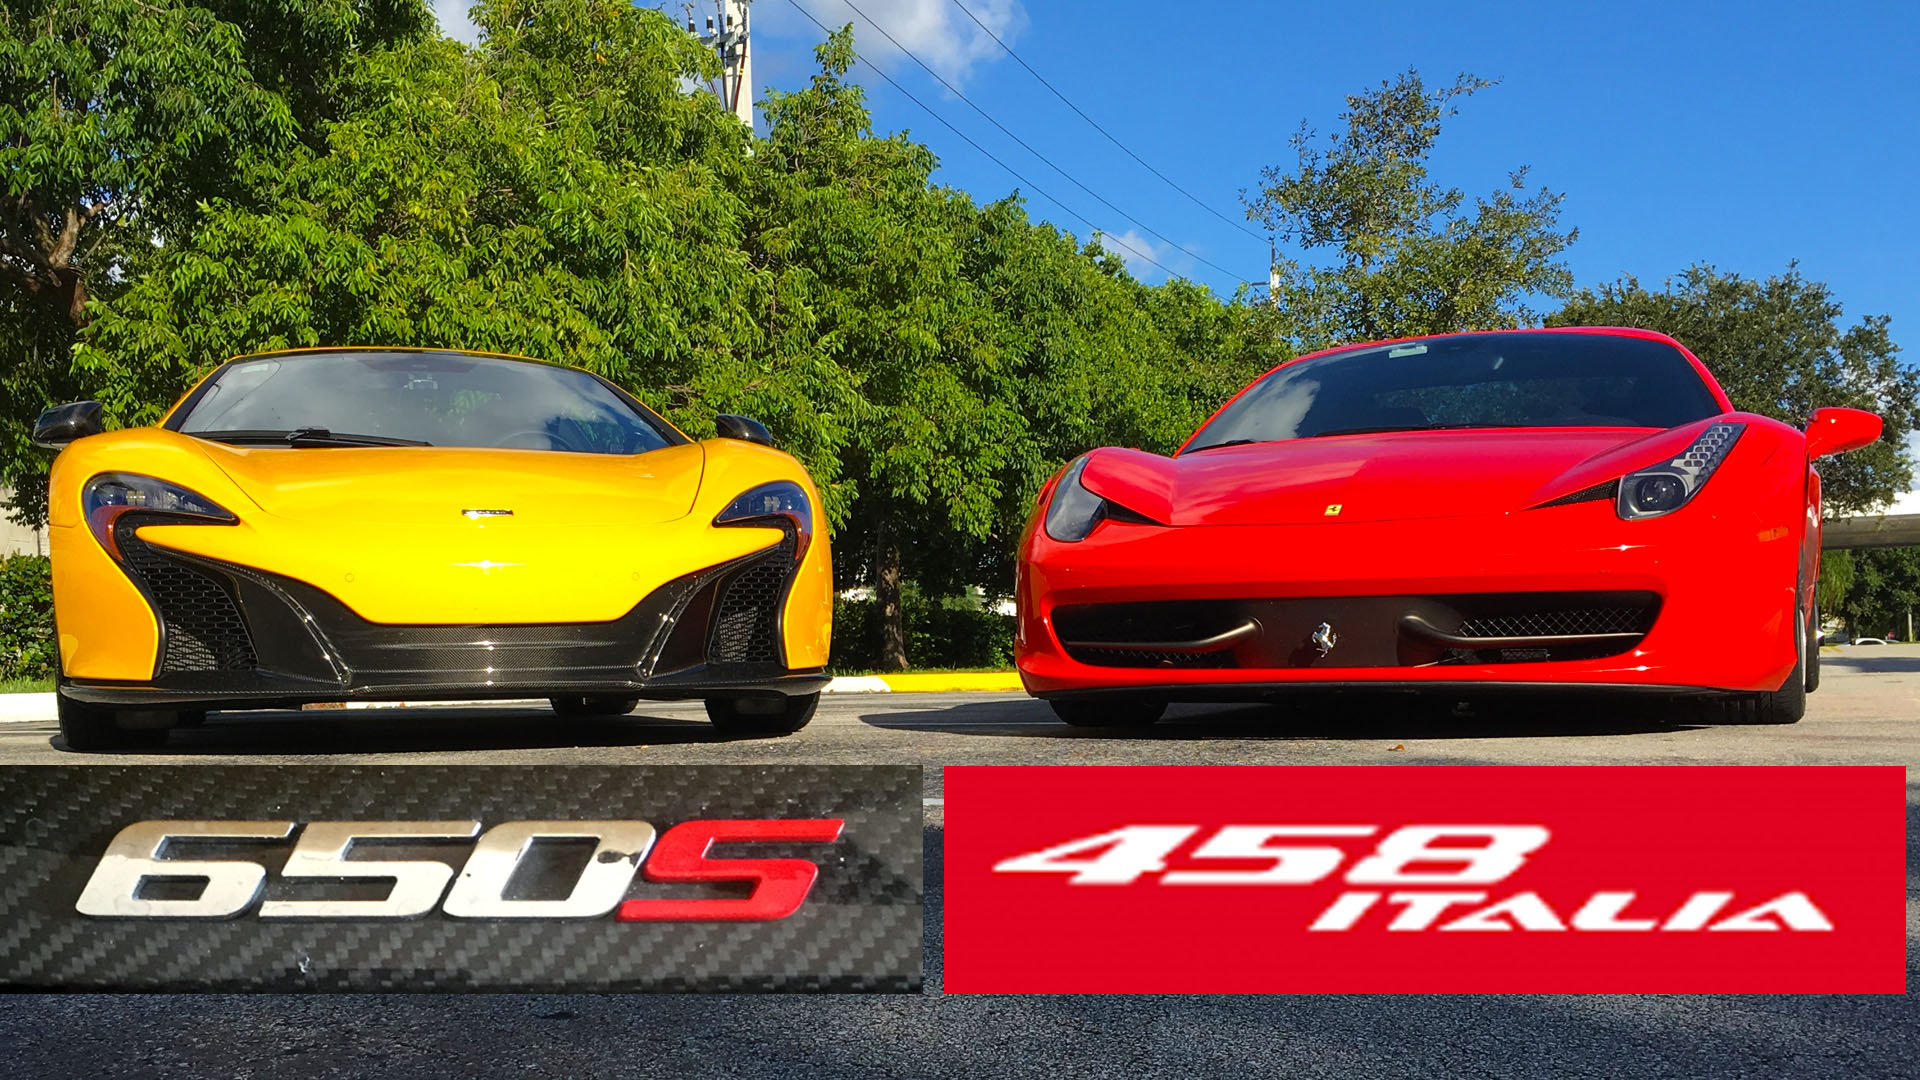 McLaren-650S-vs-Ferrari-458 Mesmerizing Porsche 911 Turbo Vs Z06 Cars Trend